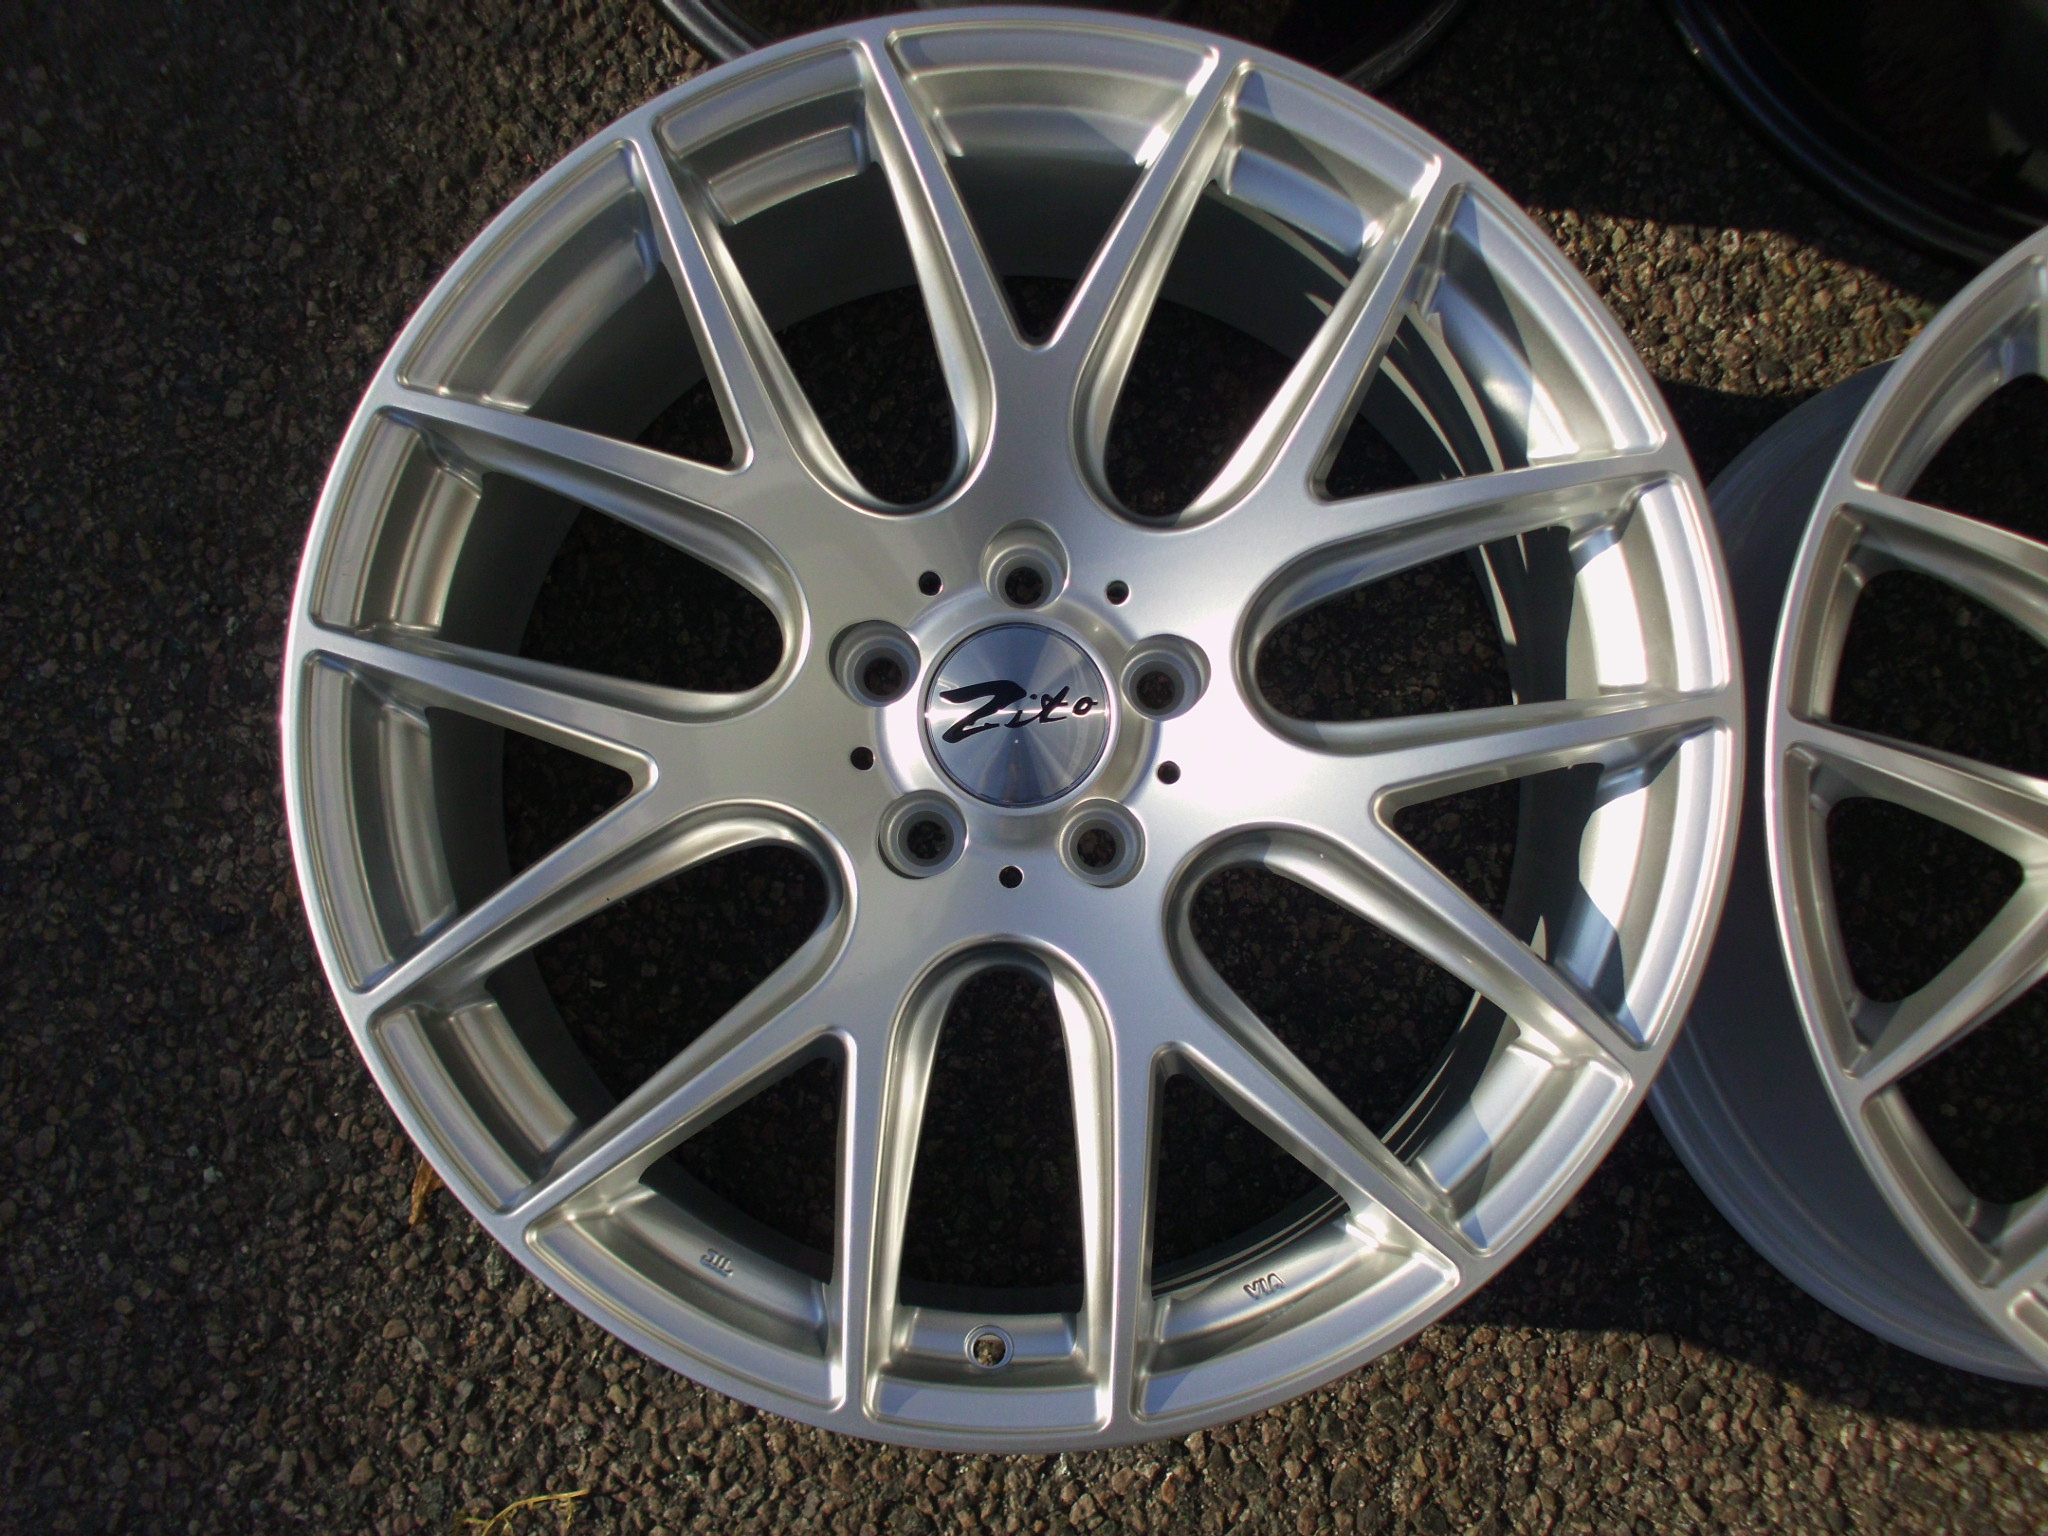 "NEW/USED 19"" ZITO 935 ALLOY WHEELS IN HYPER SILVER, BIG CONCAVE 9.5"" REARS,et30 front / et35 rear"